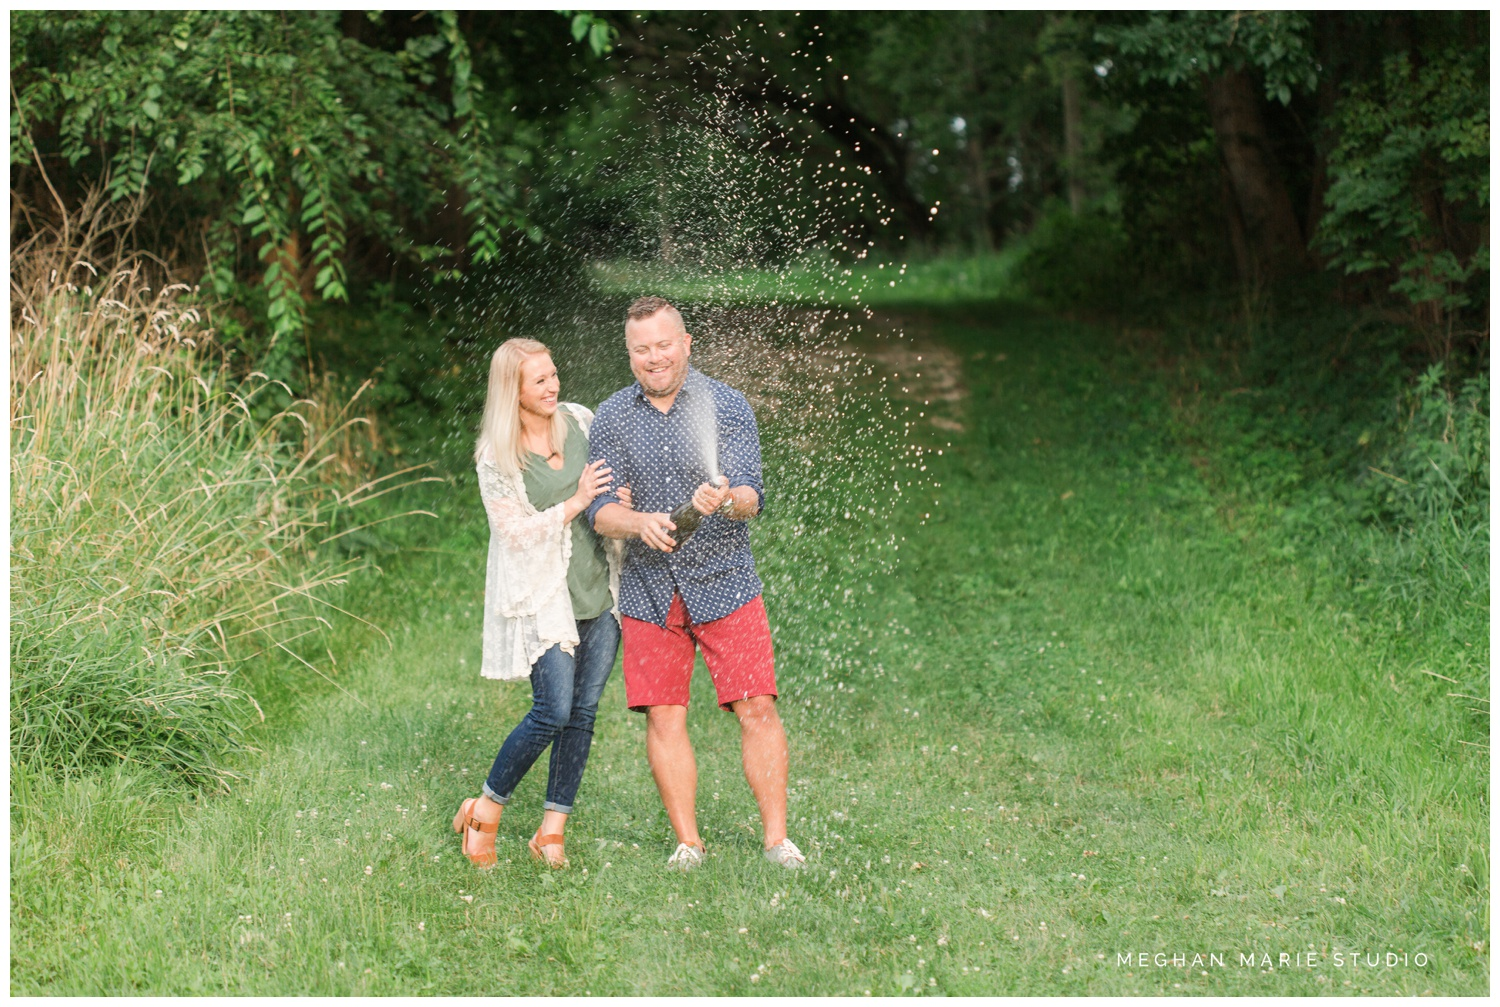 meghan marie studio ohio dayton troy photographer wedding photography engagement alex kaila family honeycreek preserve champagne downtown courthouse urban rural earth toned nature woods barn country city stone fountain elegant_0478.jpg